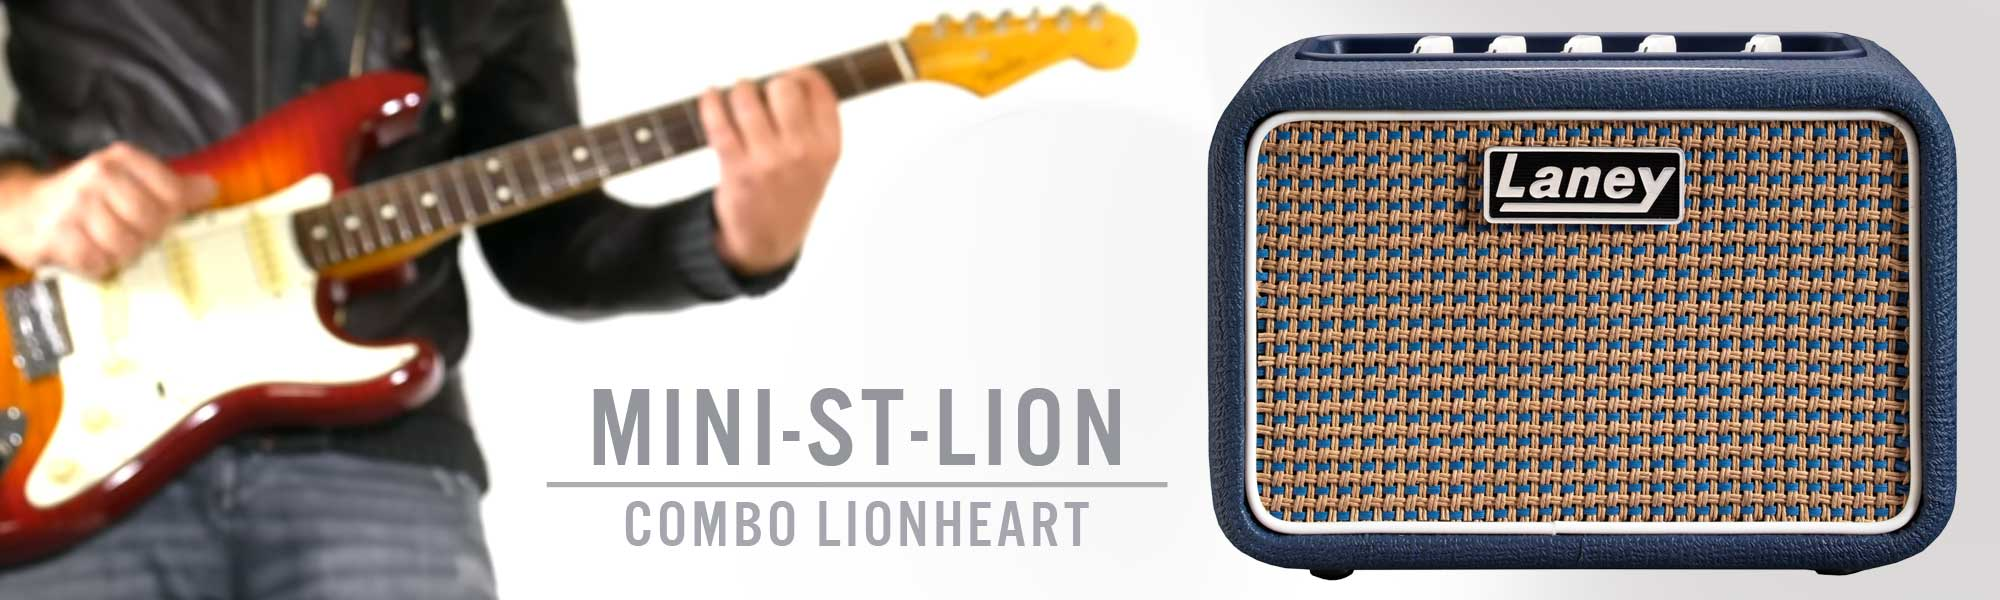 LANEY Mini-ST-Lion Combo Lionheart